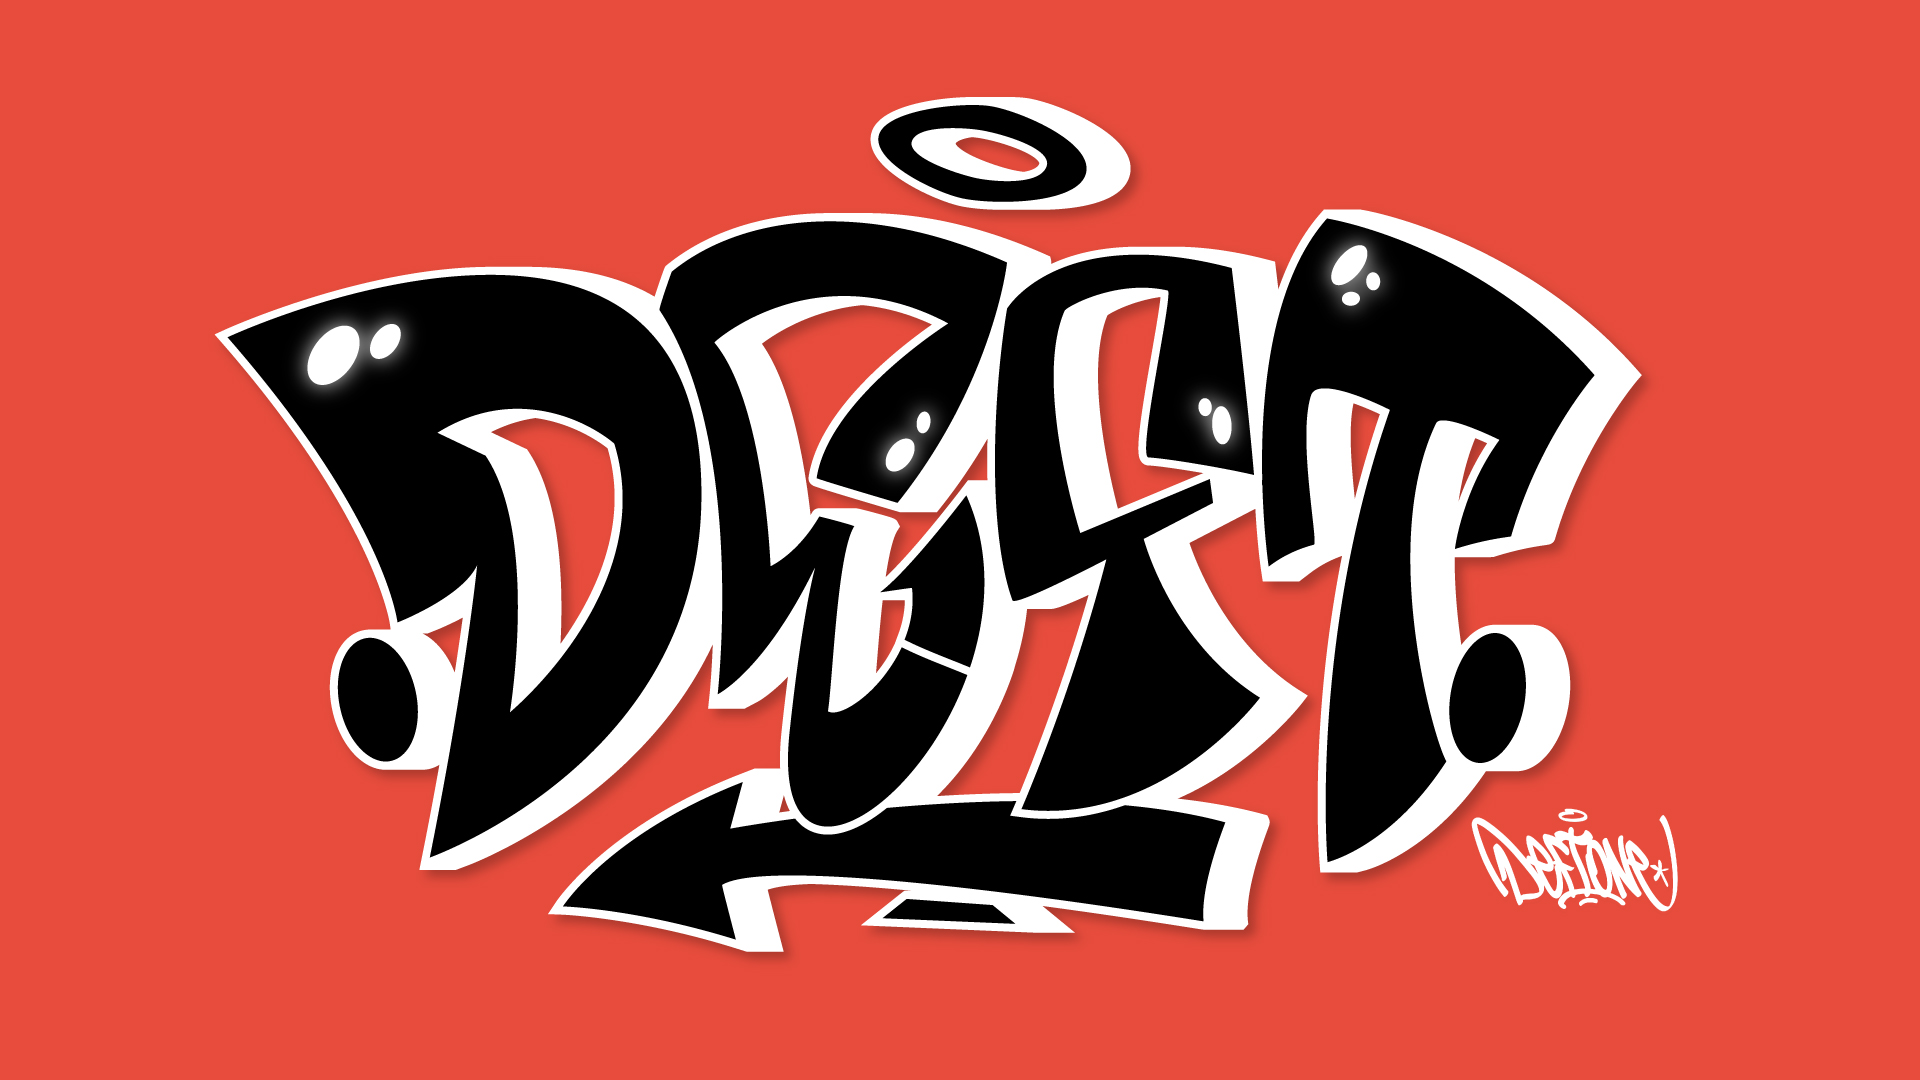 Deft - graffiti -illustrator